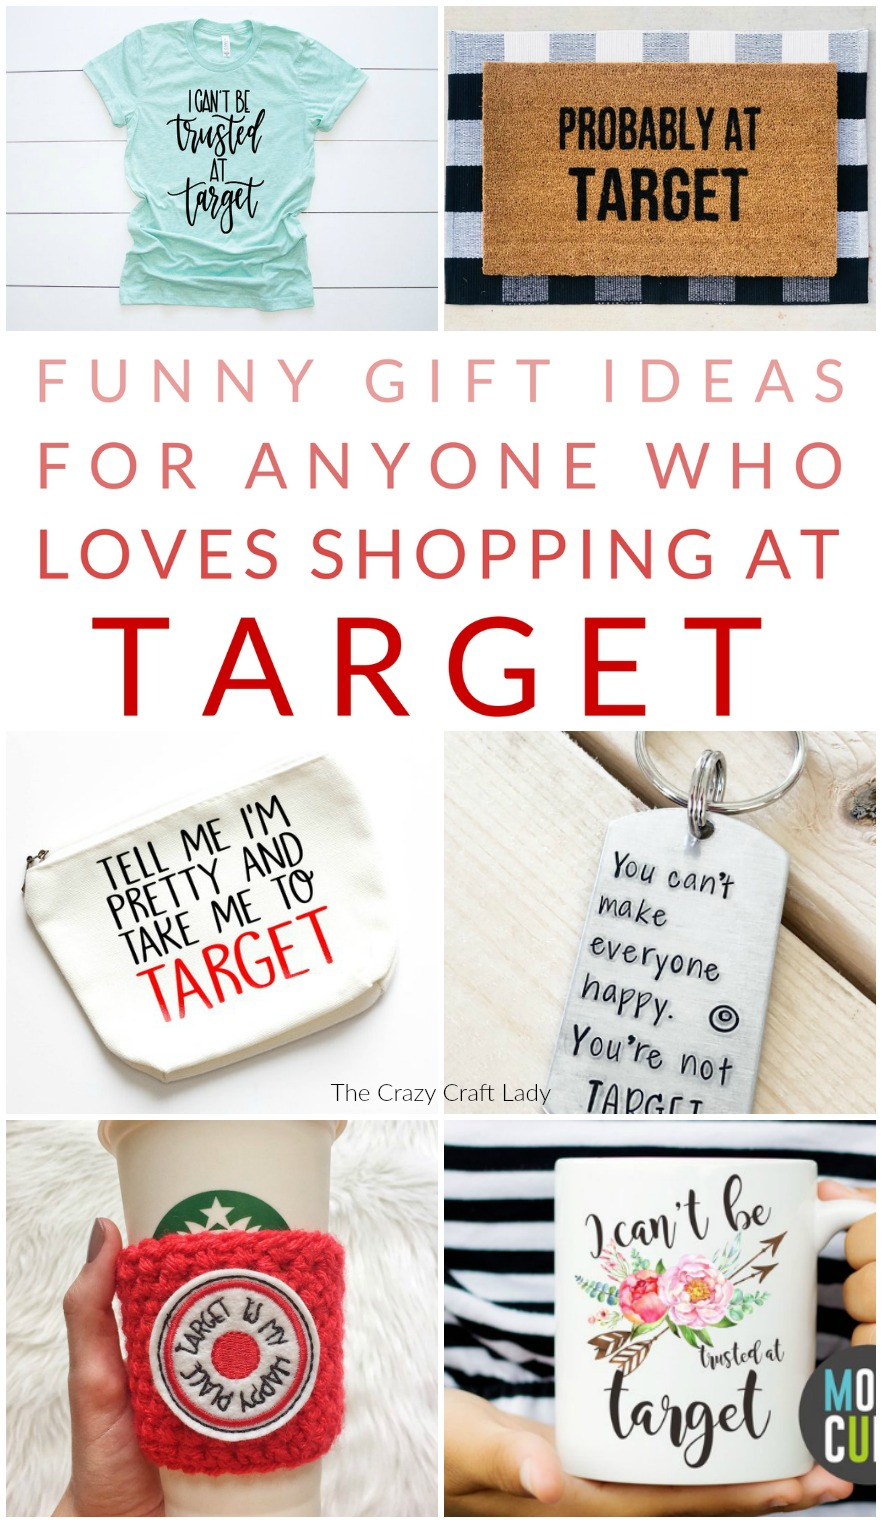 Gifts for Friends who Love Target - Gifts for Target Shoppers